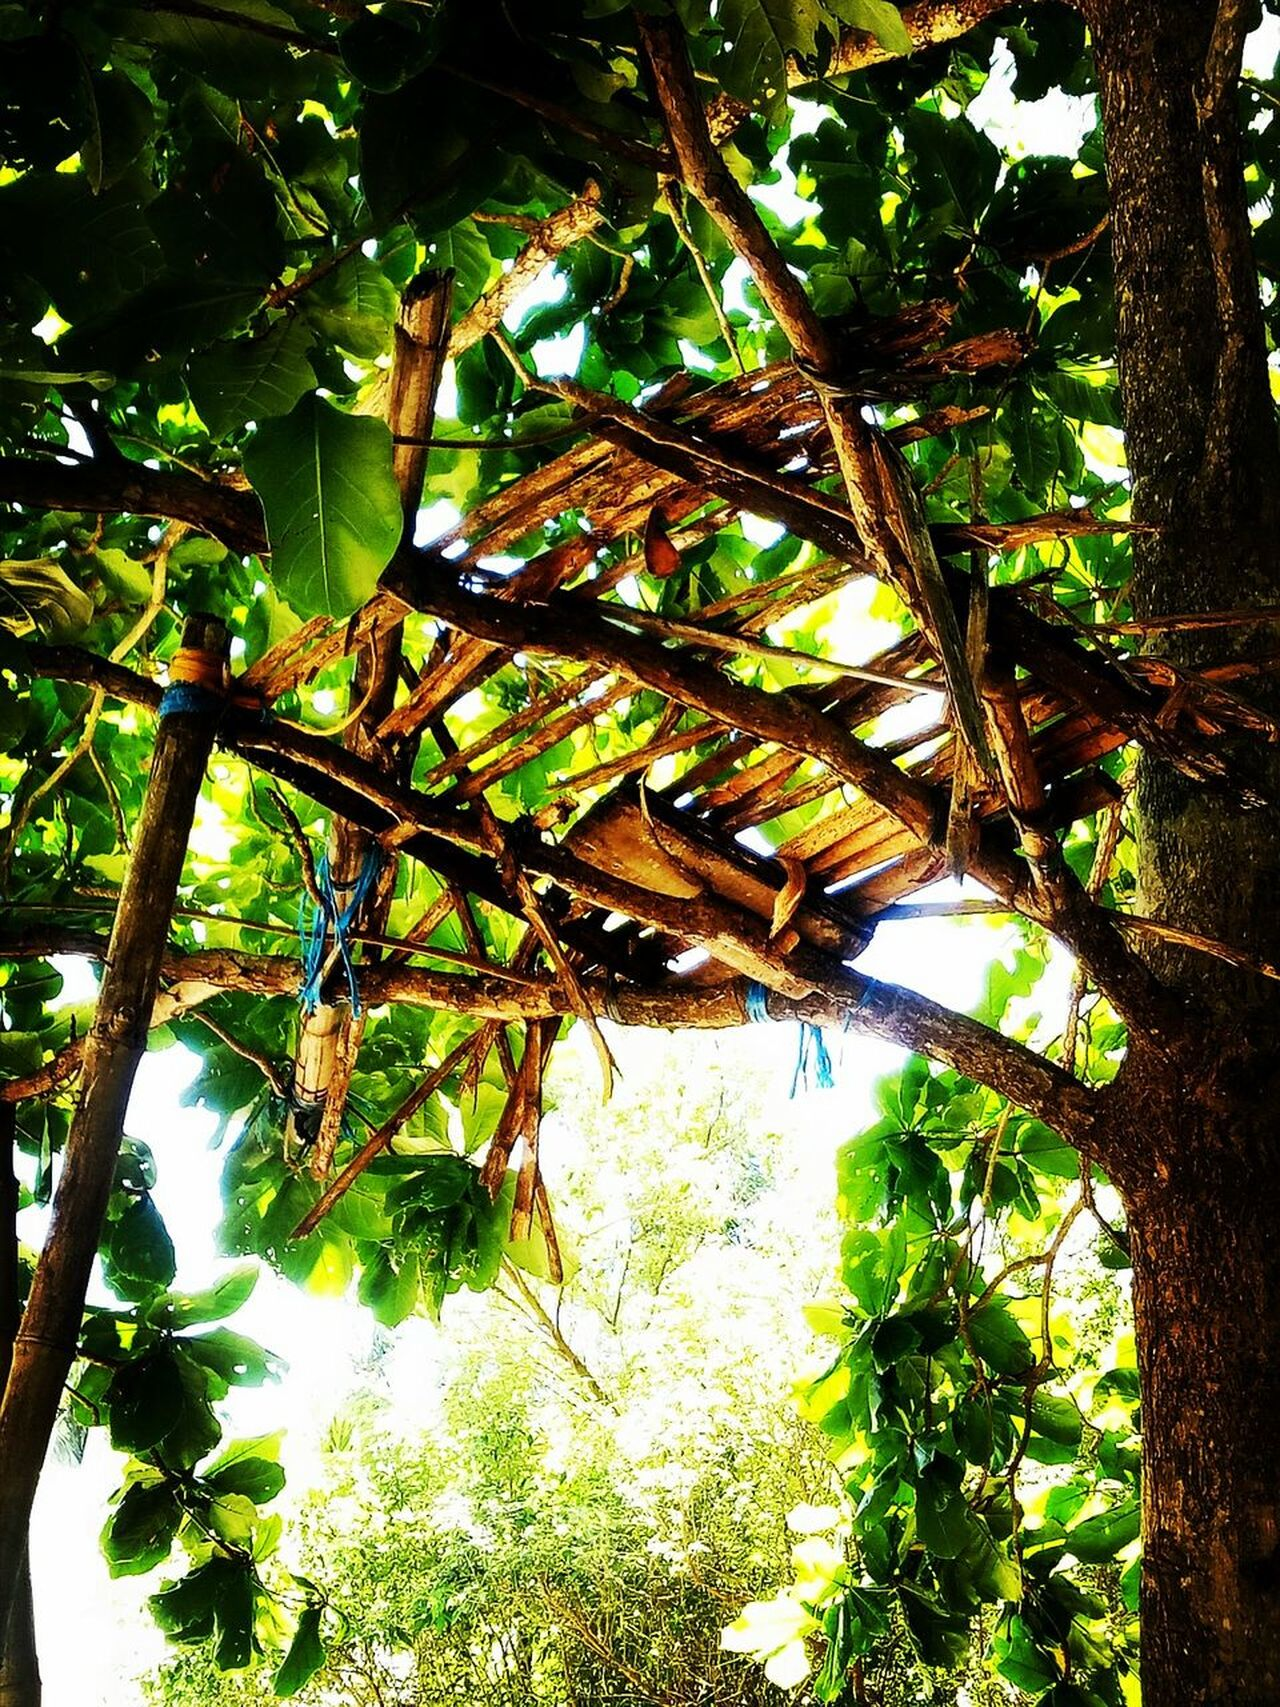 Tree Growth Nature No People Day Branch Low Angle View Beauty In Nature Outdoors Plant Close-up Cloud - Sky Beauty In Everything Photooftheday The Street Photographer - 2017 EyeEm Awards EyeEmNewHere Pattern Sunlight Backgrounds Tree Trunk Taking Pictures Leaves Green Paint Decay Eye Em Nature Lover Philippinesphotography